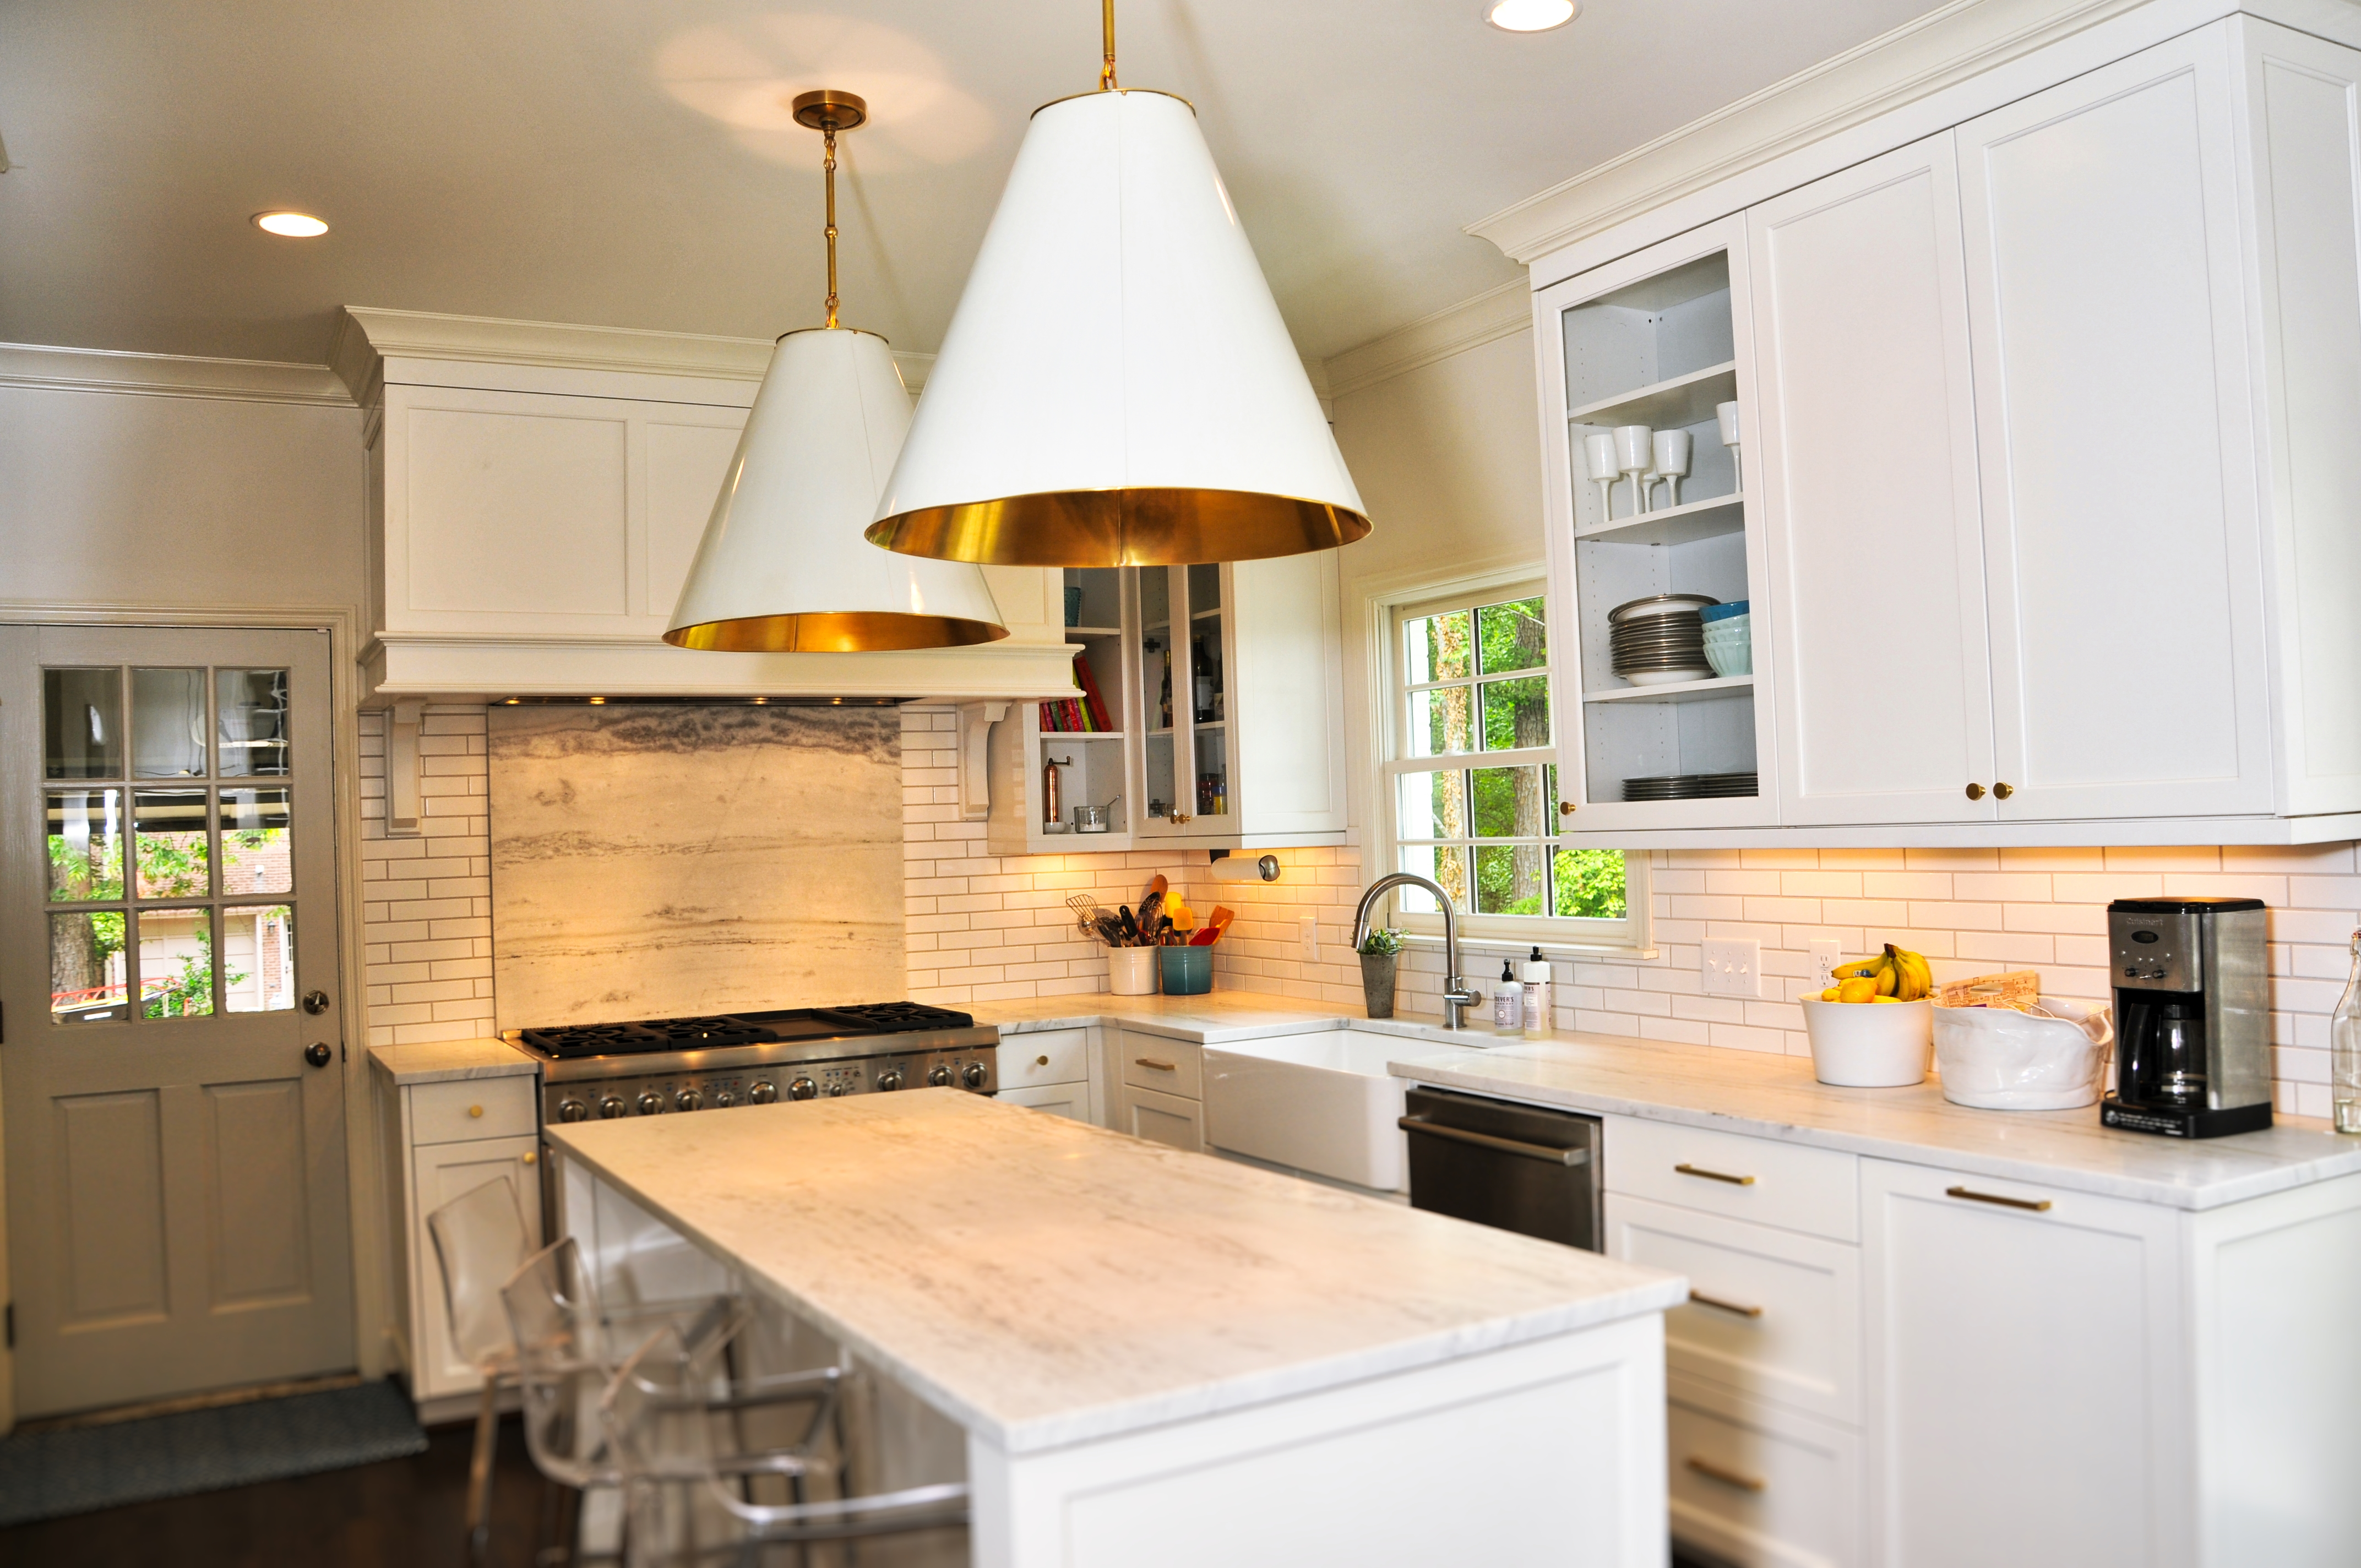 Kitchen Cabinets Birmingham Al Kitchen Potential Inc Custom Cabinets And Remodelling Birmingham Al